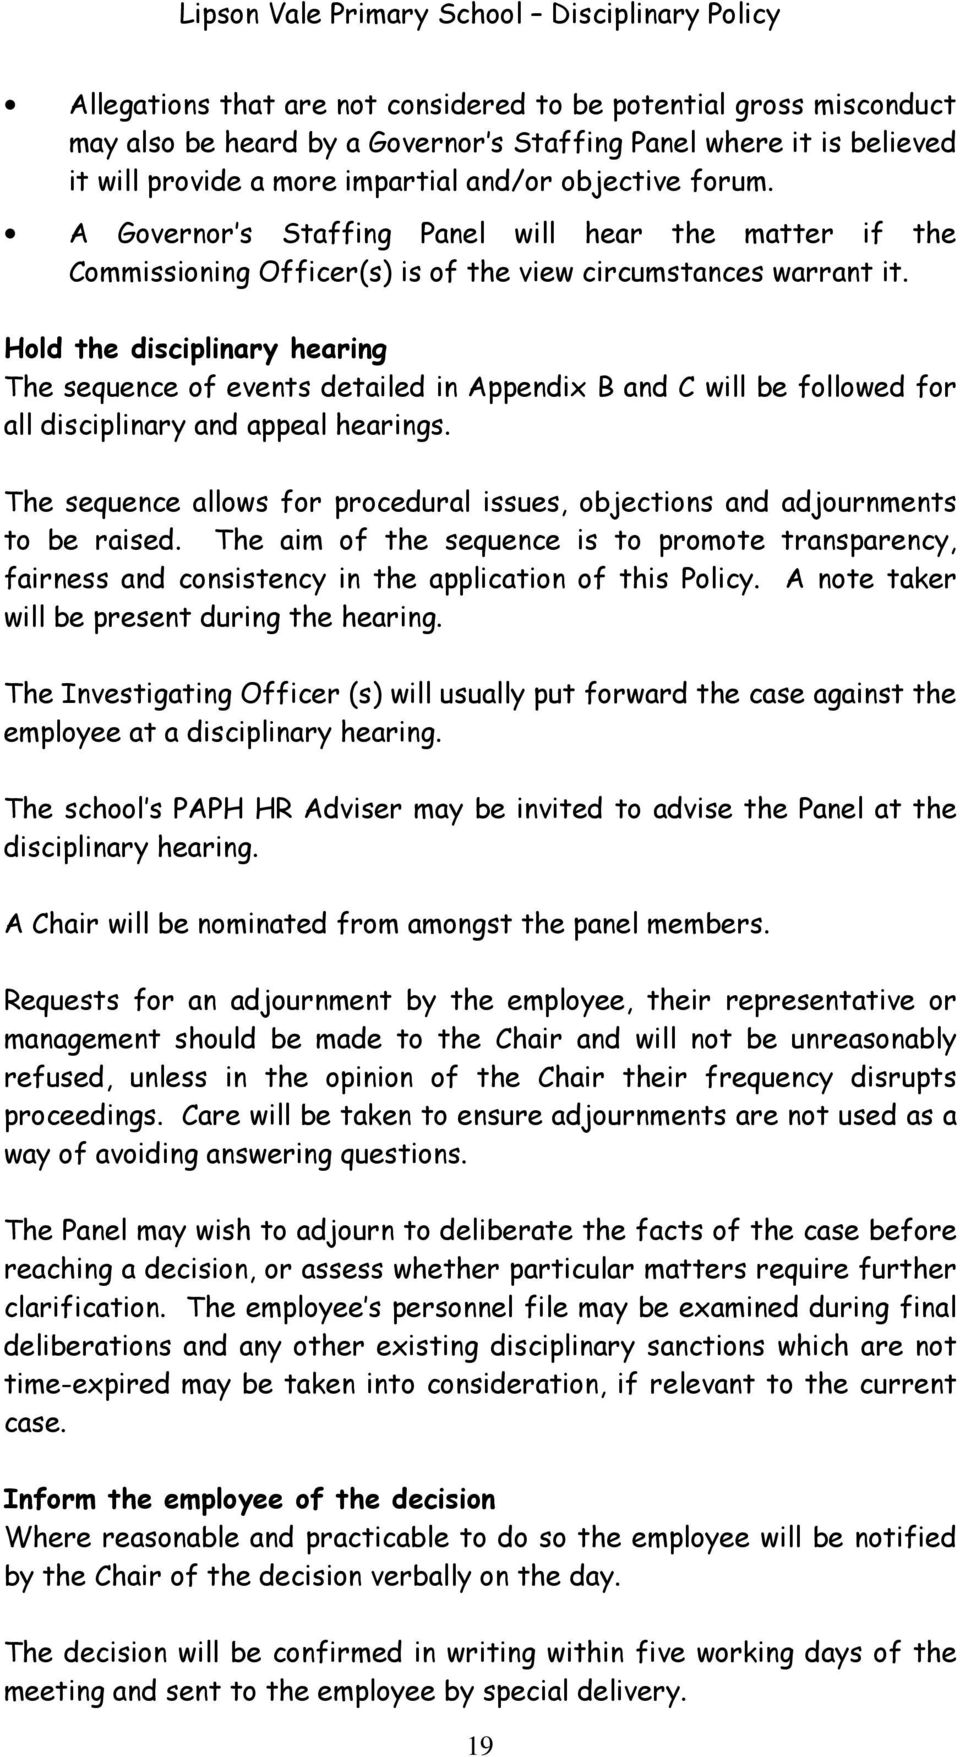 Hold the disciplinary hearing The sequence of events detailed in Appendix B and C will be followed for all disciplinary and appeal hearings.